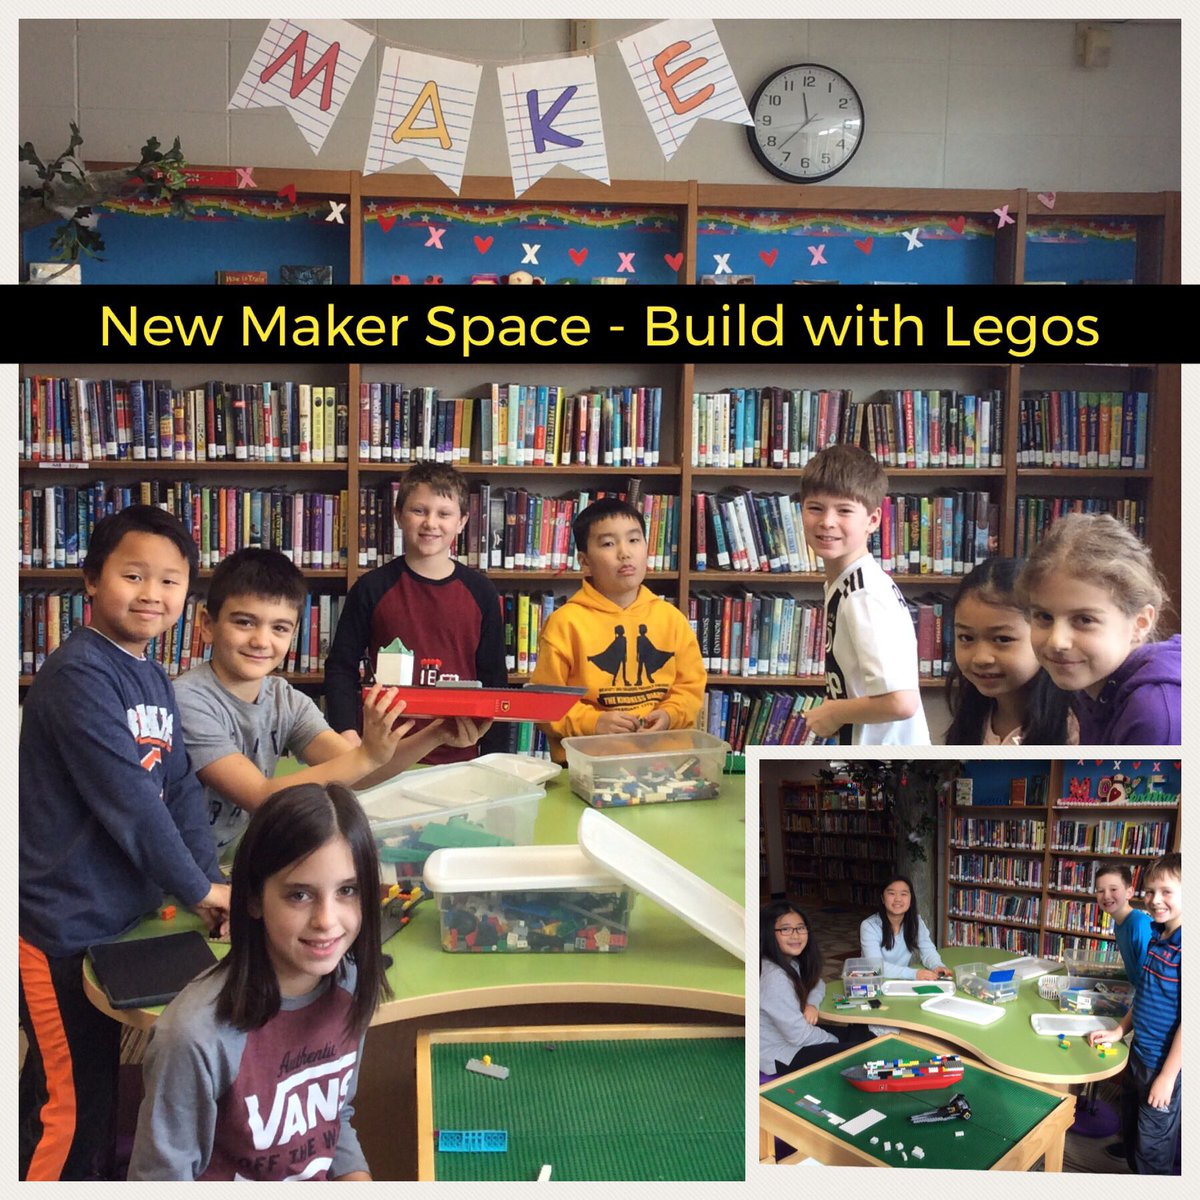 test Twitter Media - Students are enjoying our building with Legos Maker Space!  #d30learns @Wescott3A @Sislow3S @jlosoff @Wescott3G @Wescott4S @Wescott4M https://t.co/q33egj6THq